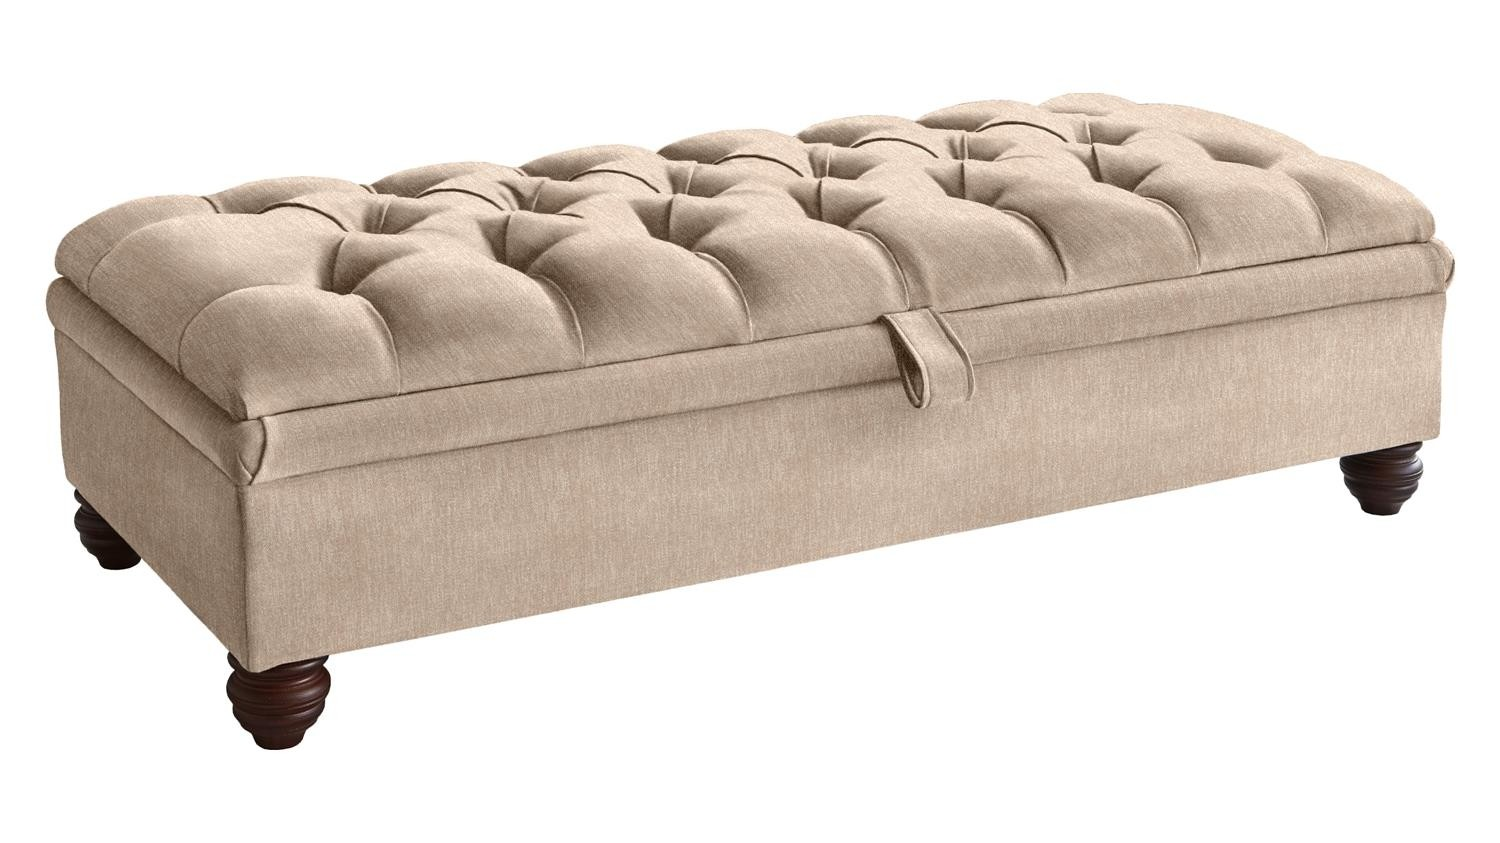 The Winsley Large Ottoman